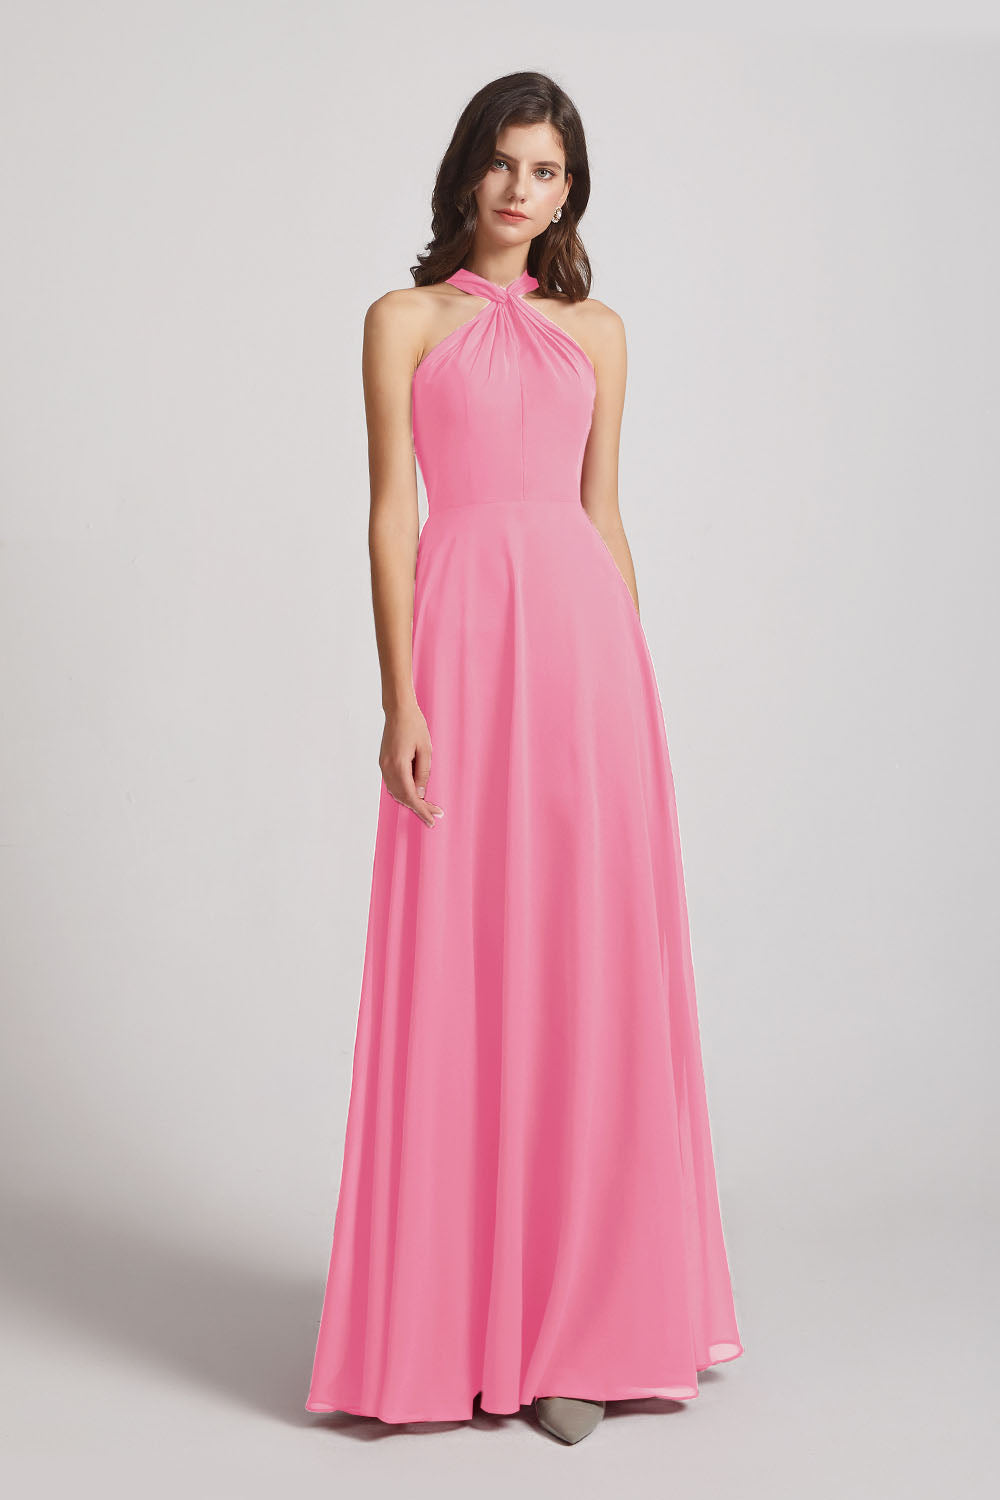 Alfa Bridal Hot Pink Floor Length Chiffon Bridesmaid Dresses with Criss Cross Neckline (AF0113)